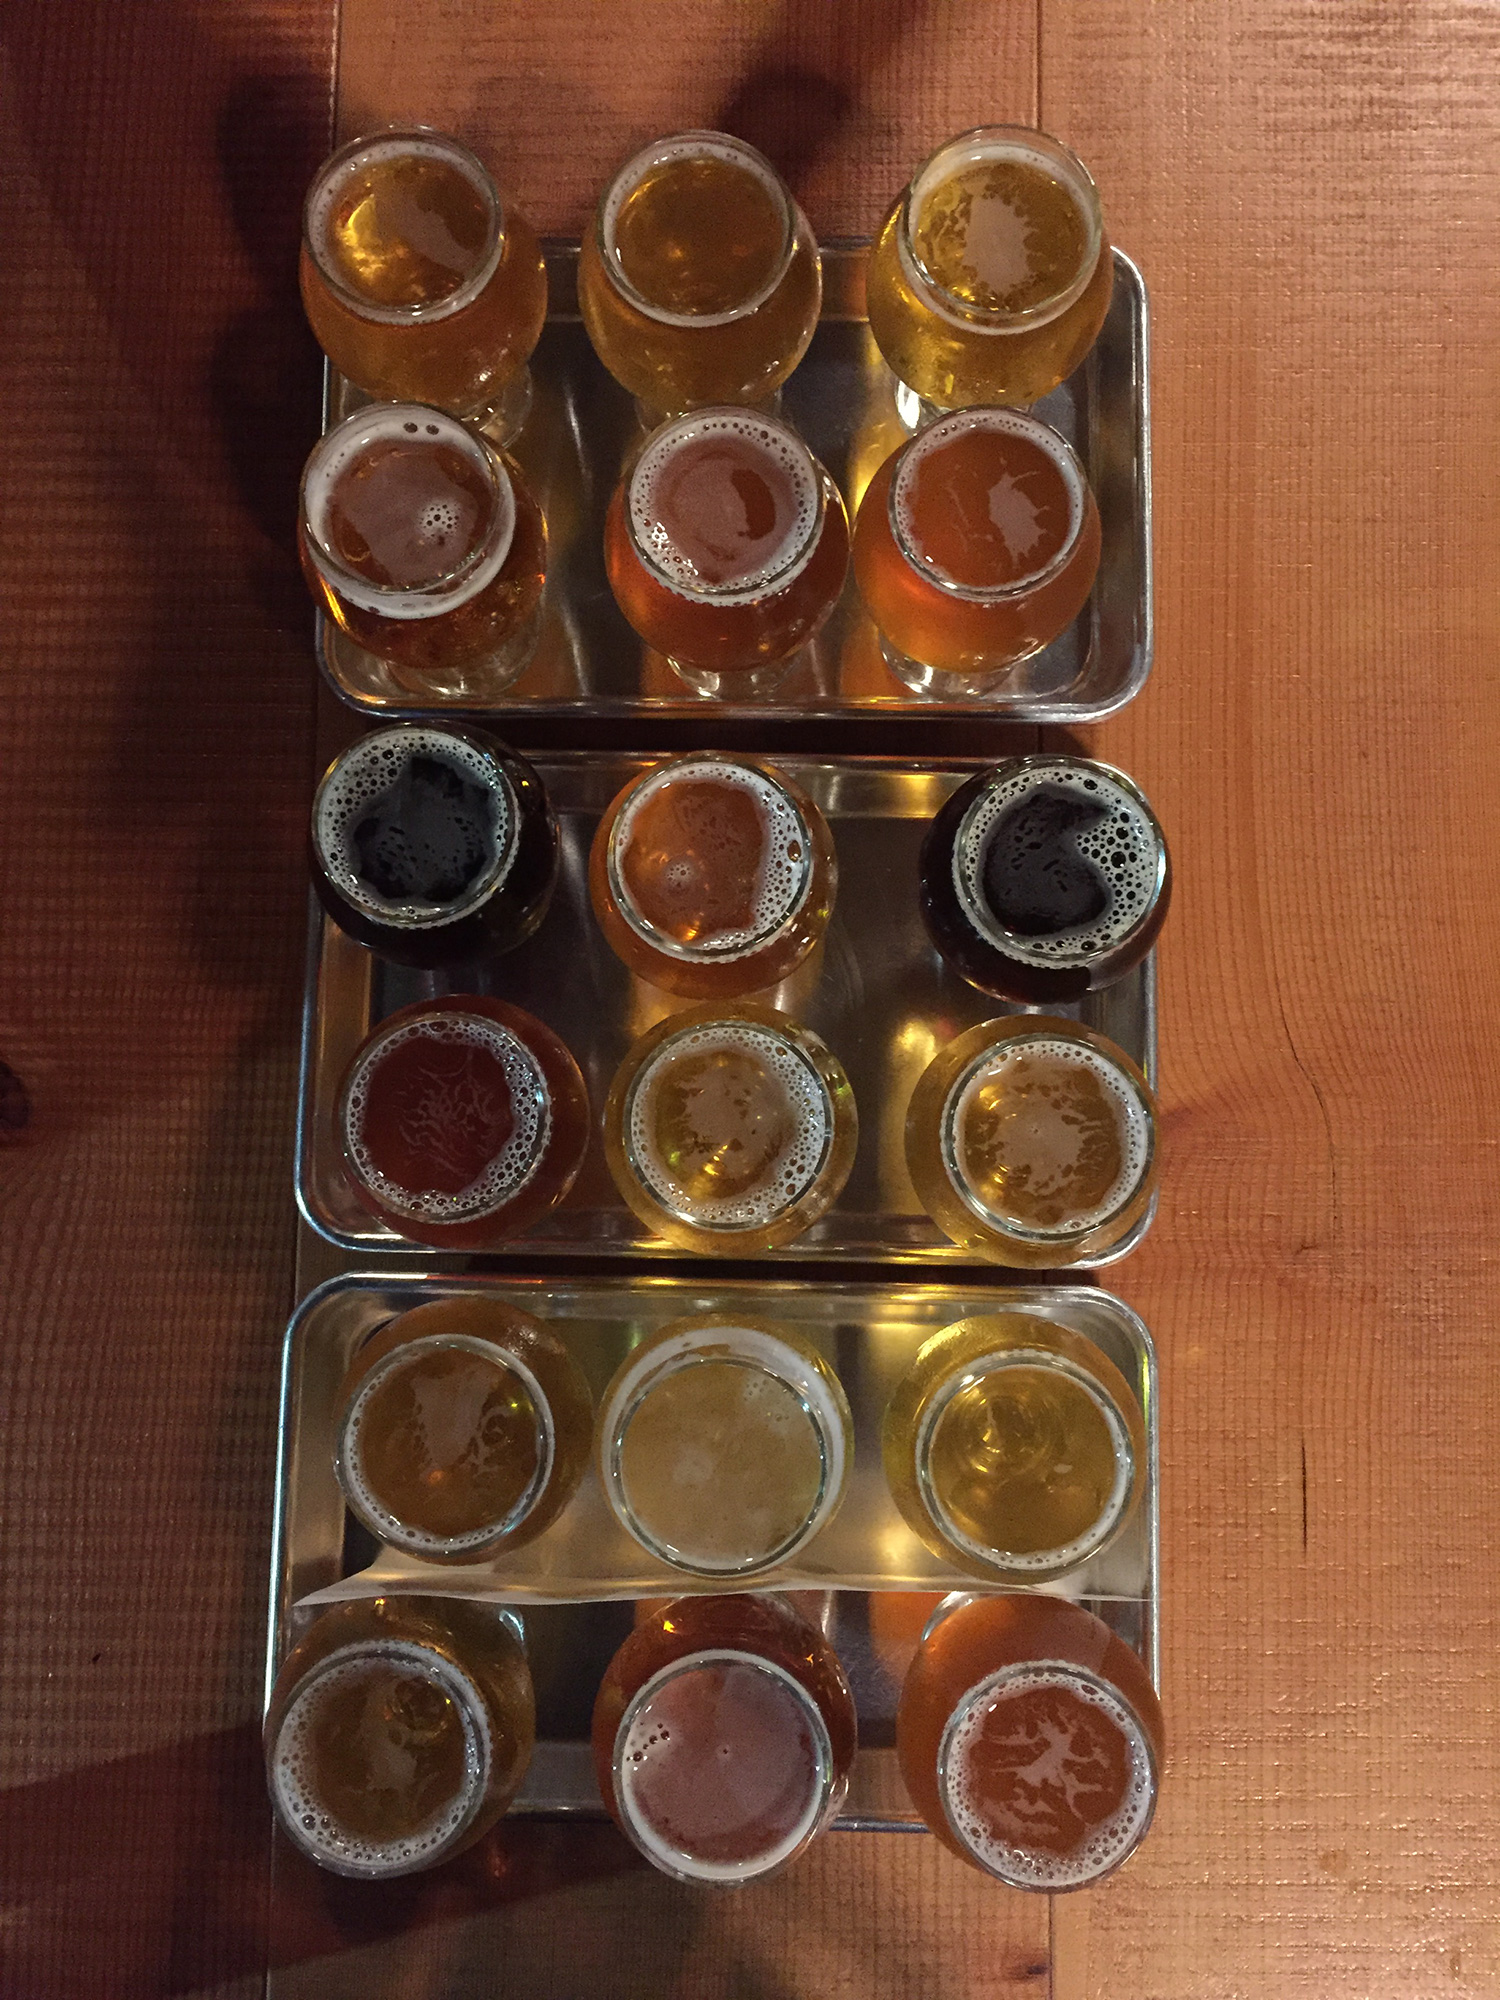 Flights on flights of beer!